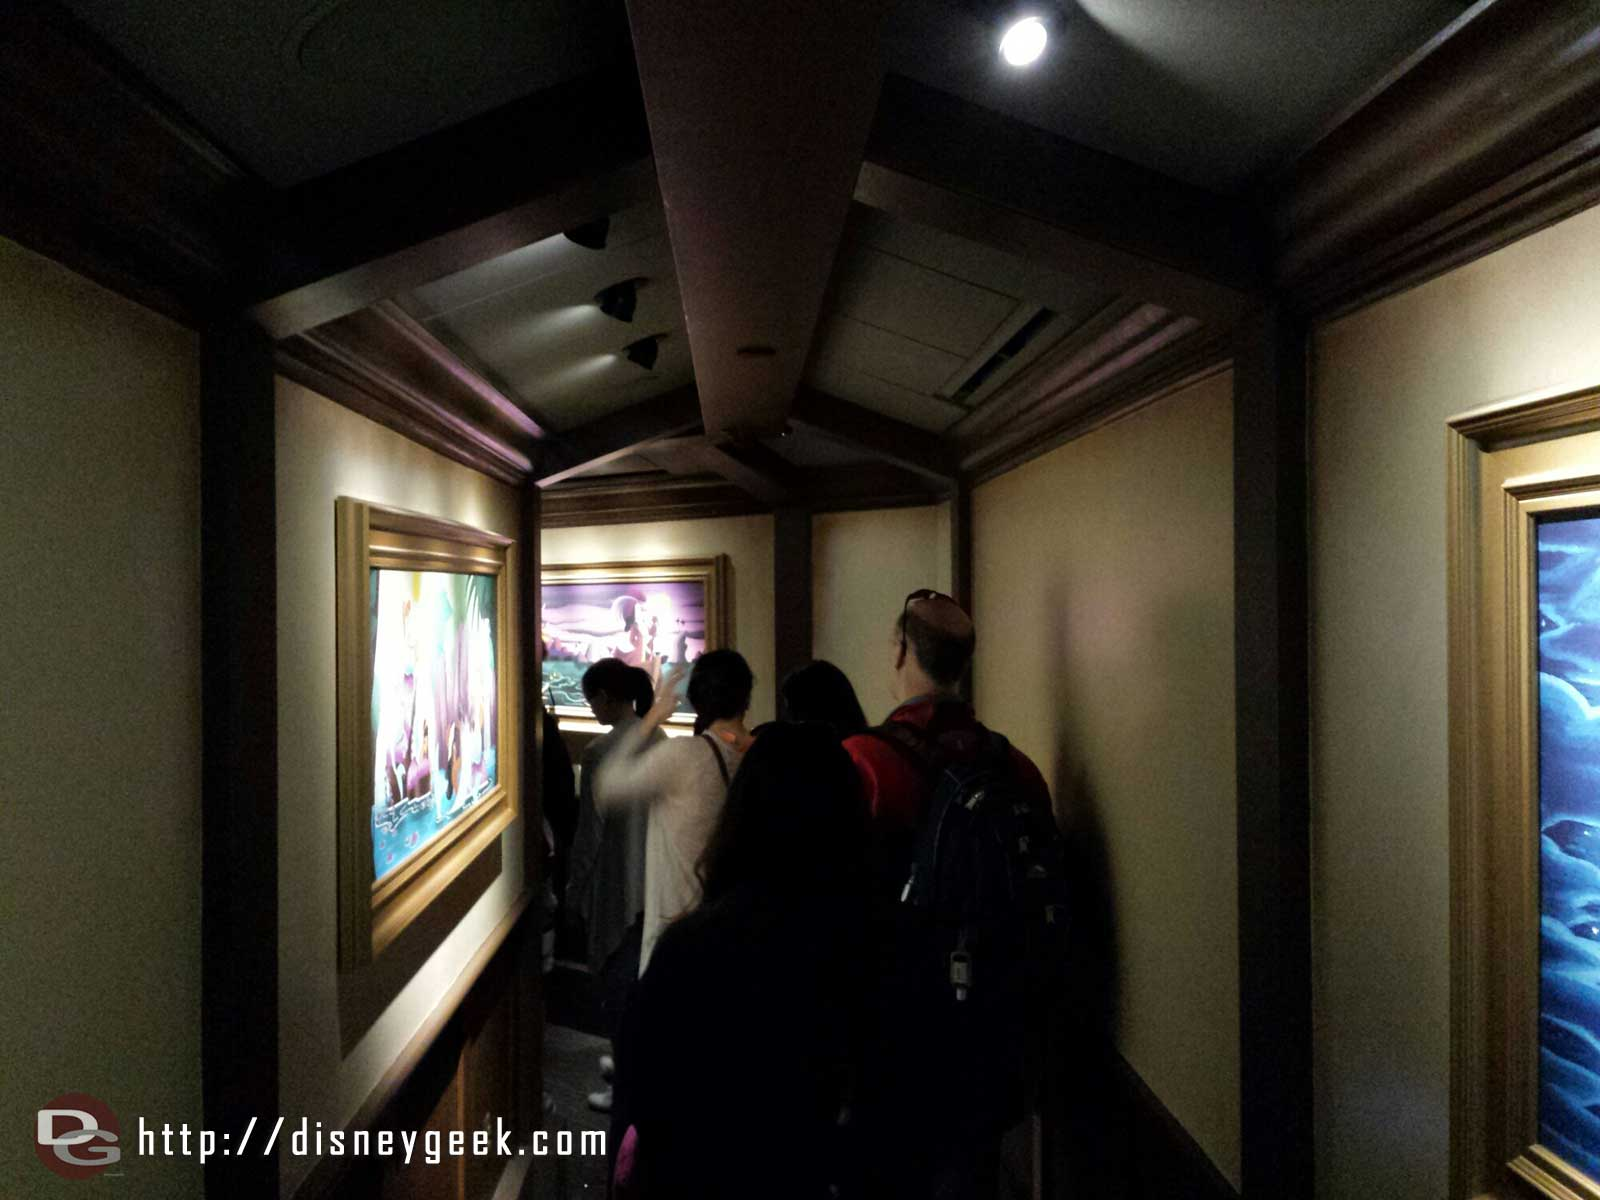 The new Peter Pan queue. The first section is an art gallery.